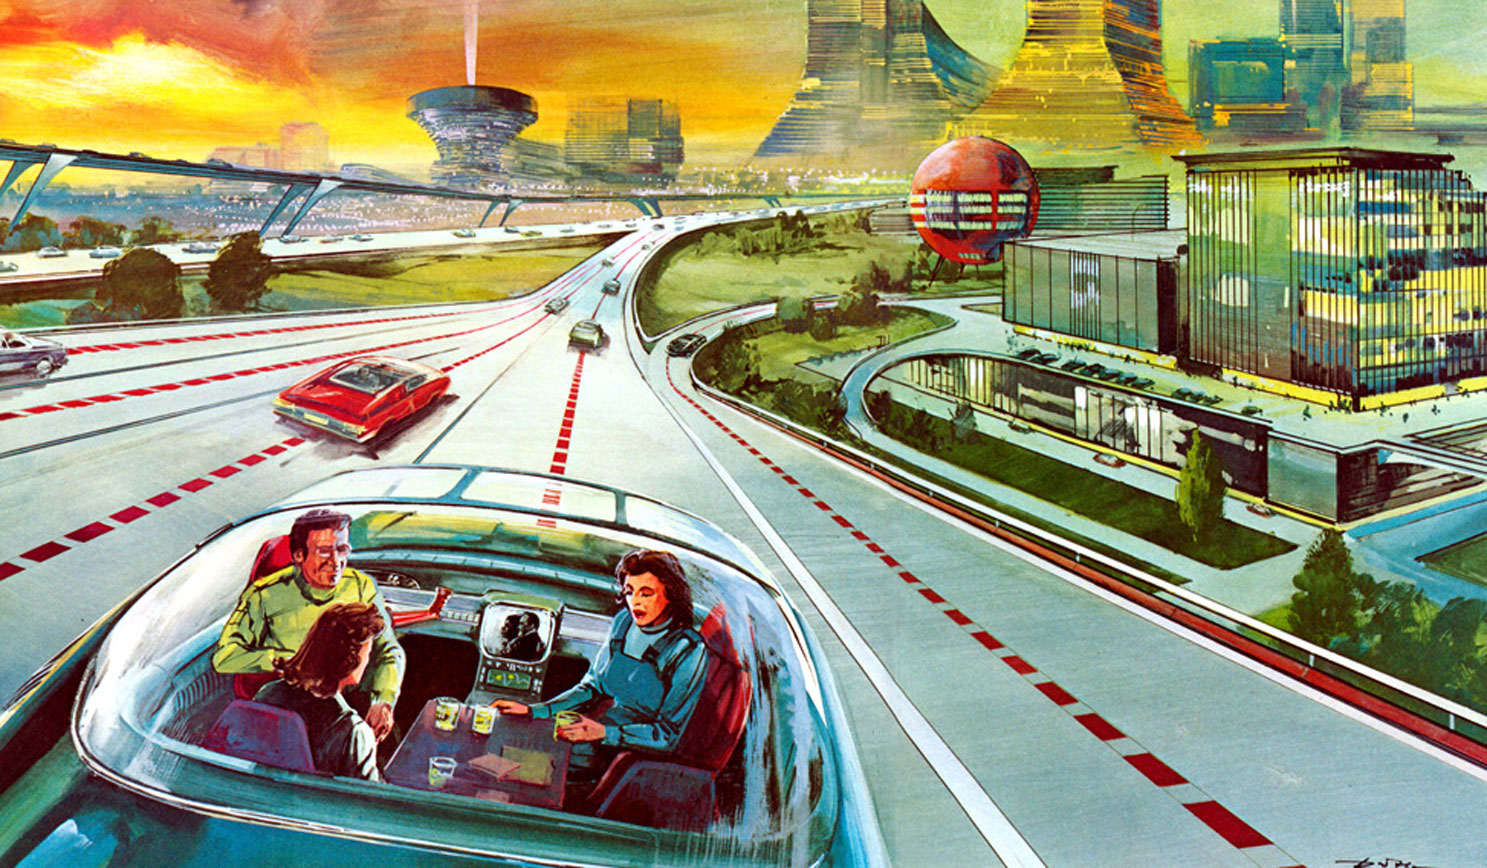 The future from the 1950s